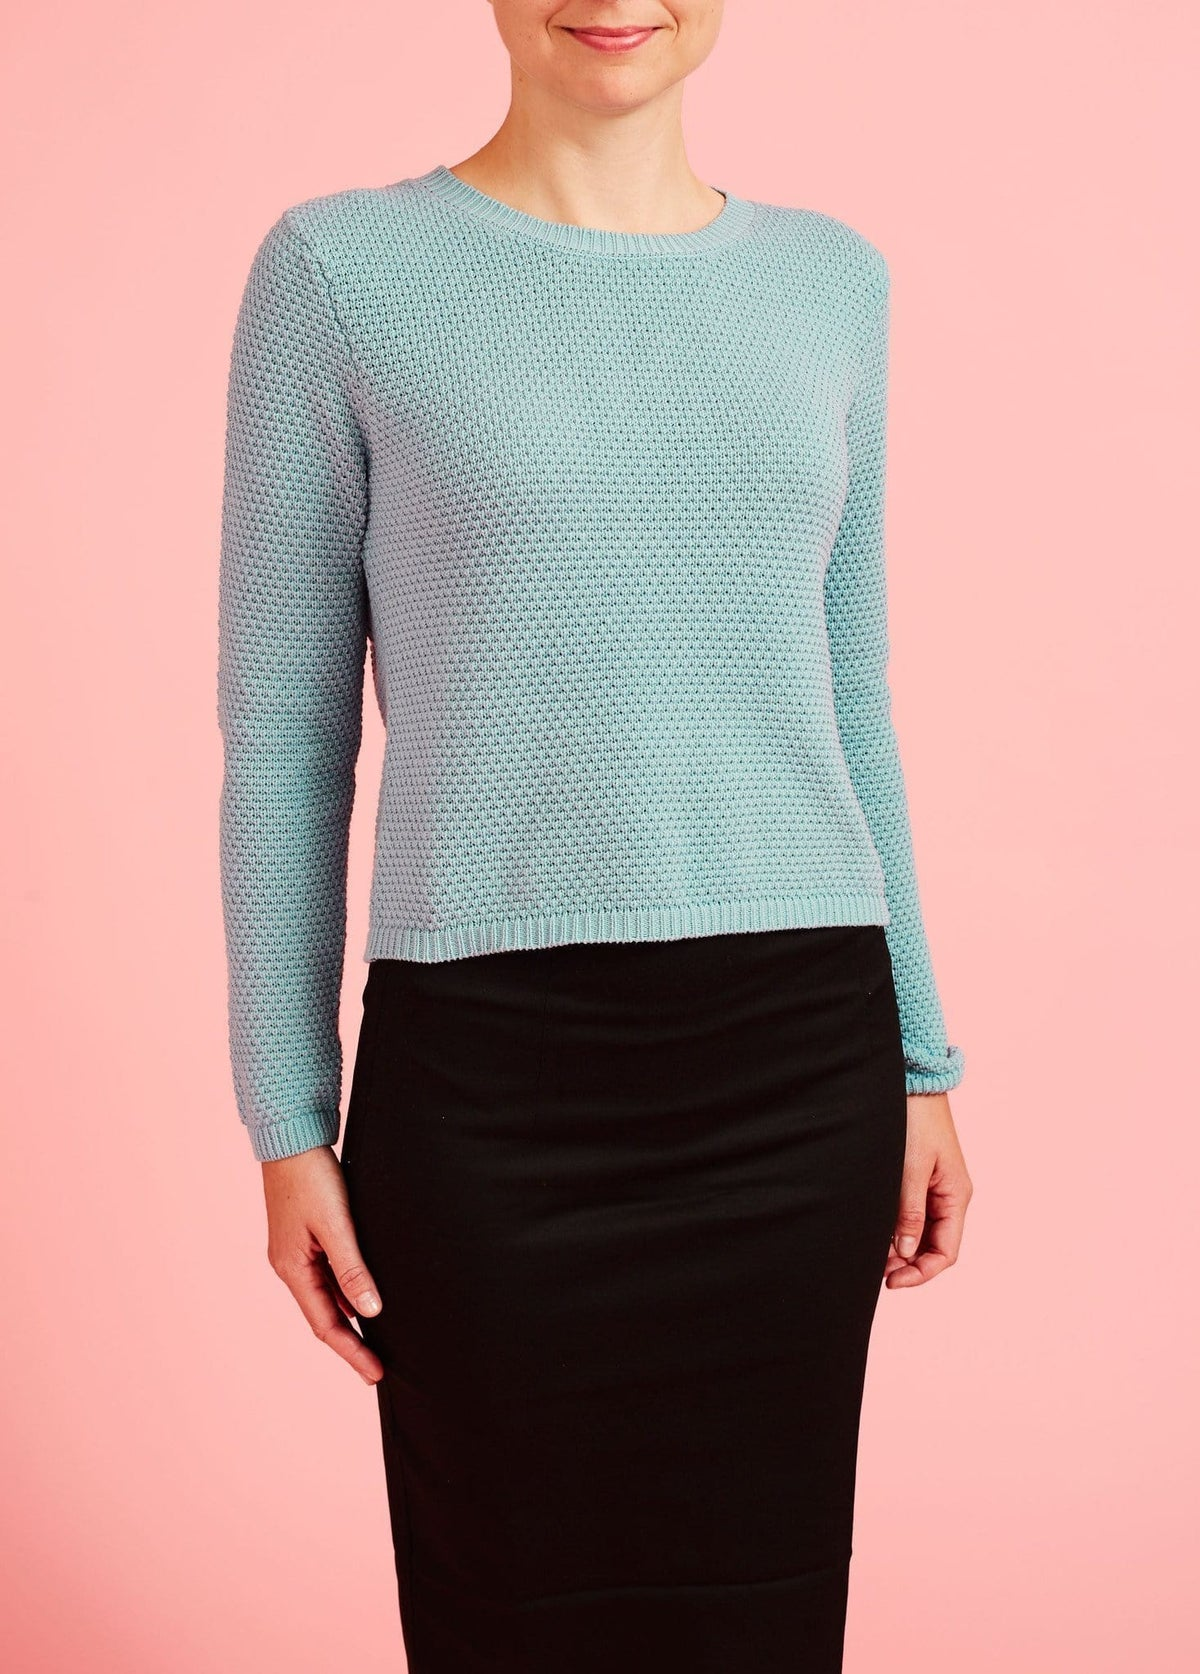 Emily & Fin: Kort, strikket sweater